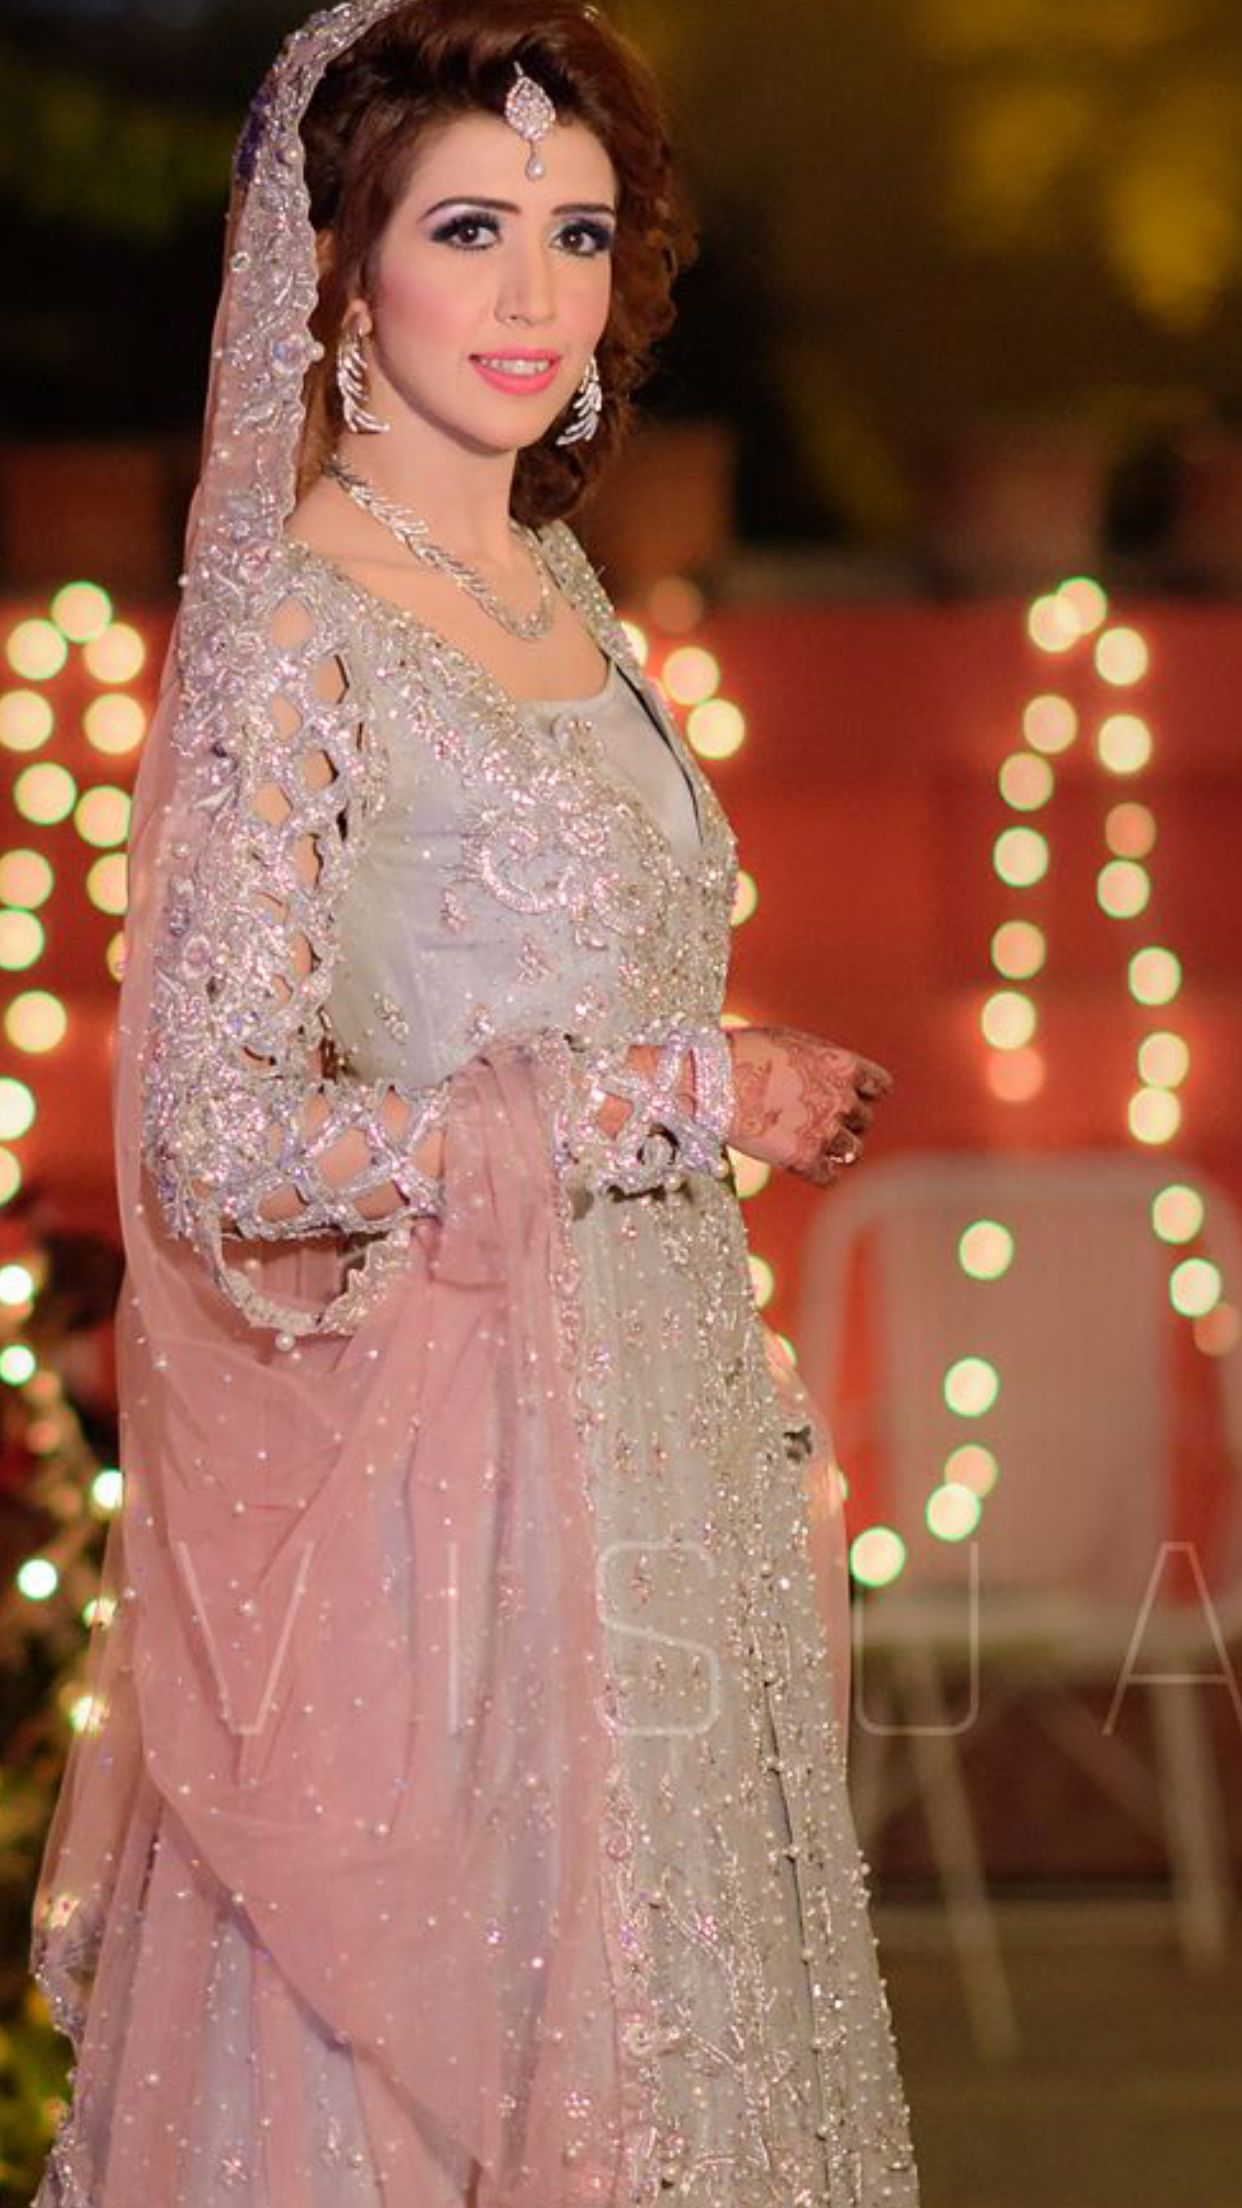 Pin by Sameera Khatri on Wedding   Pinterest   Walima, Gowns and Ring